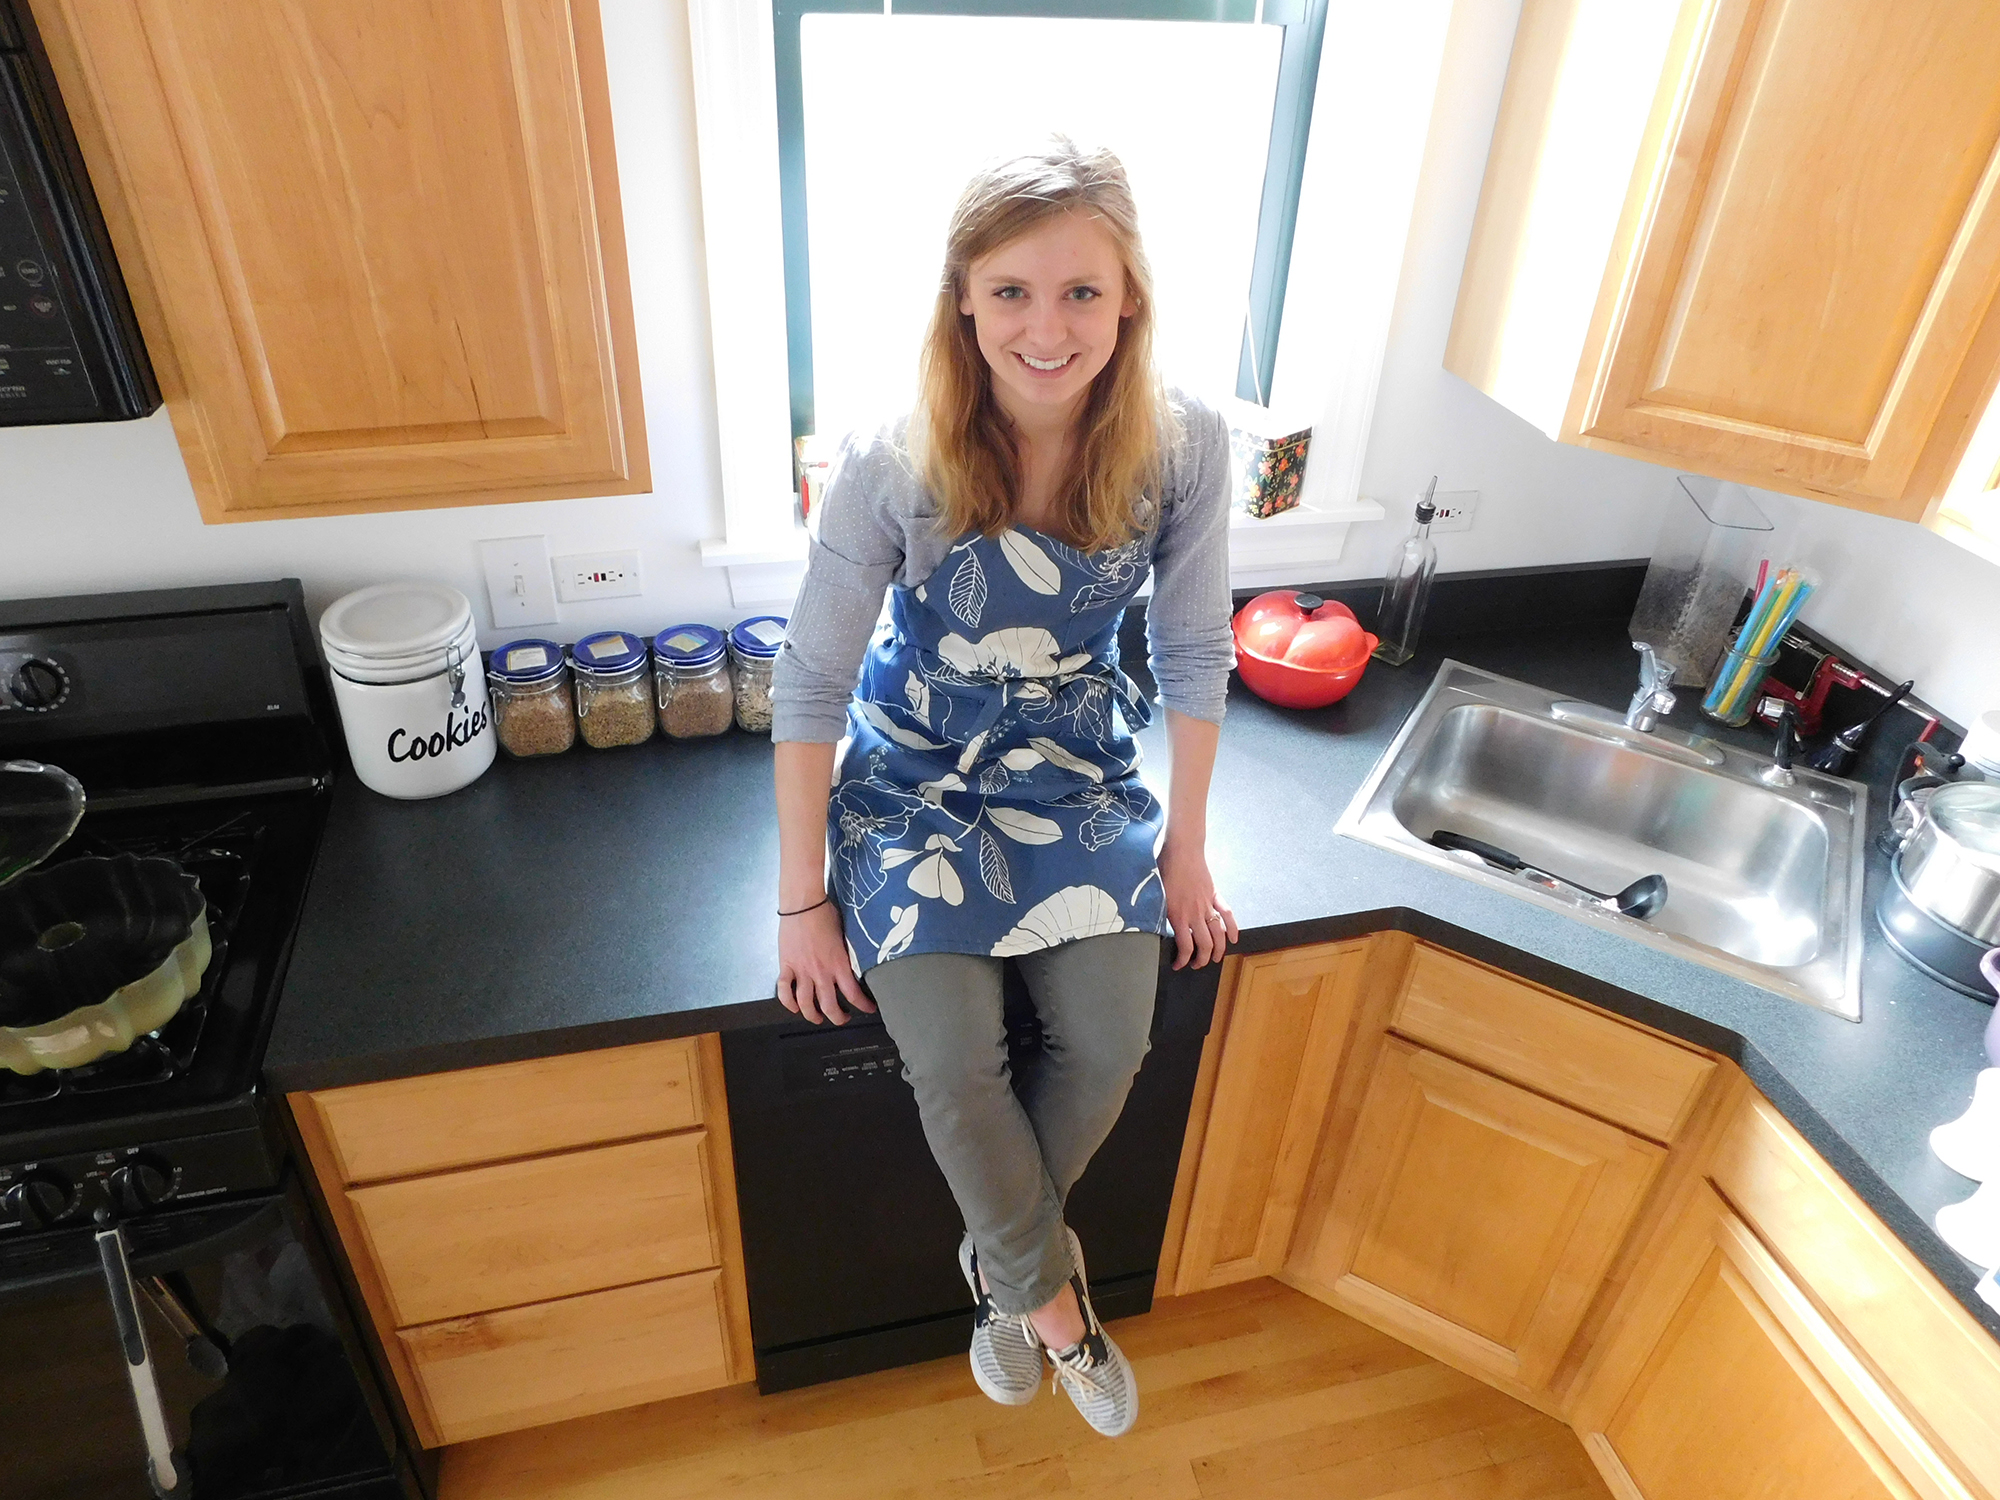 Meet our Lead Recipe Tester, Kate Ander.